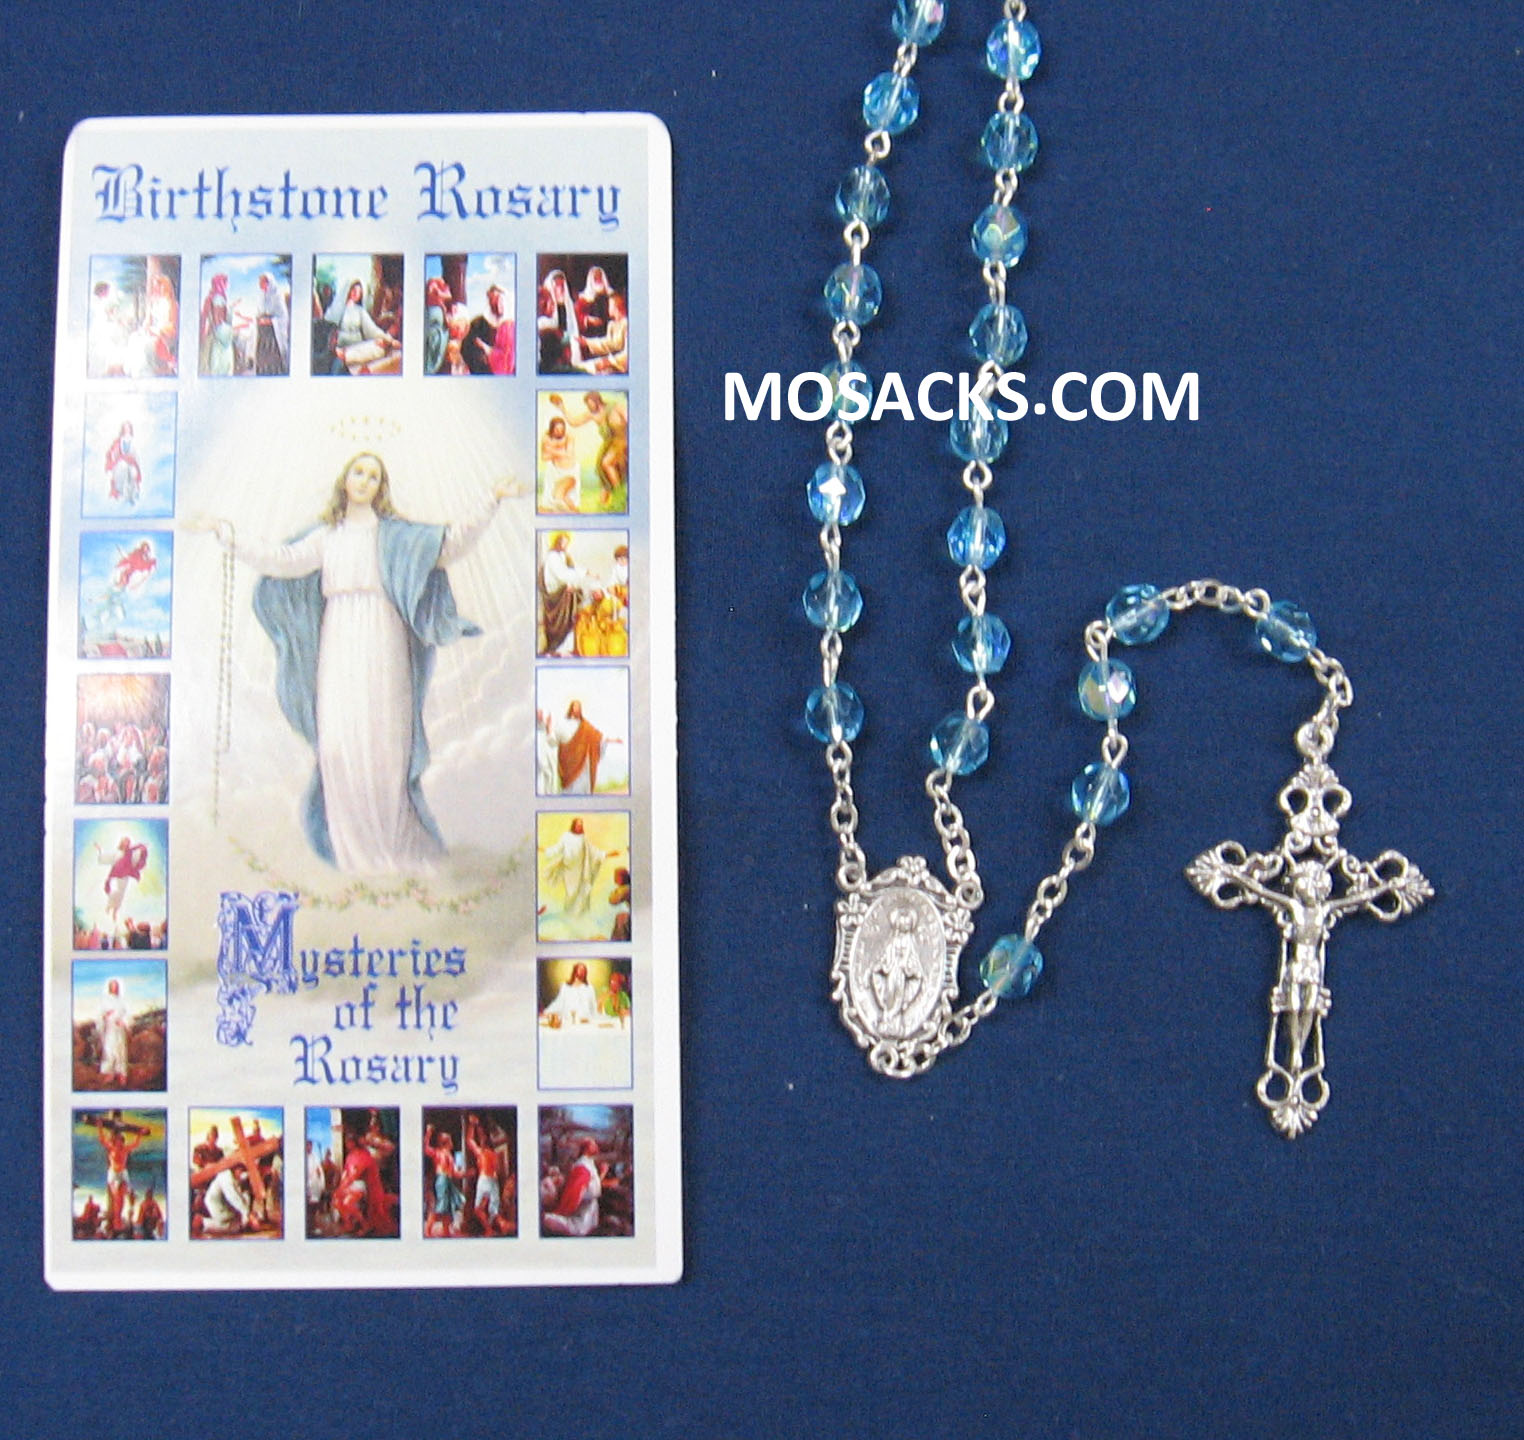 March Aquamarine Aurora Borealis Birthstone Rosary 64-307/AQ/C1